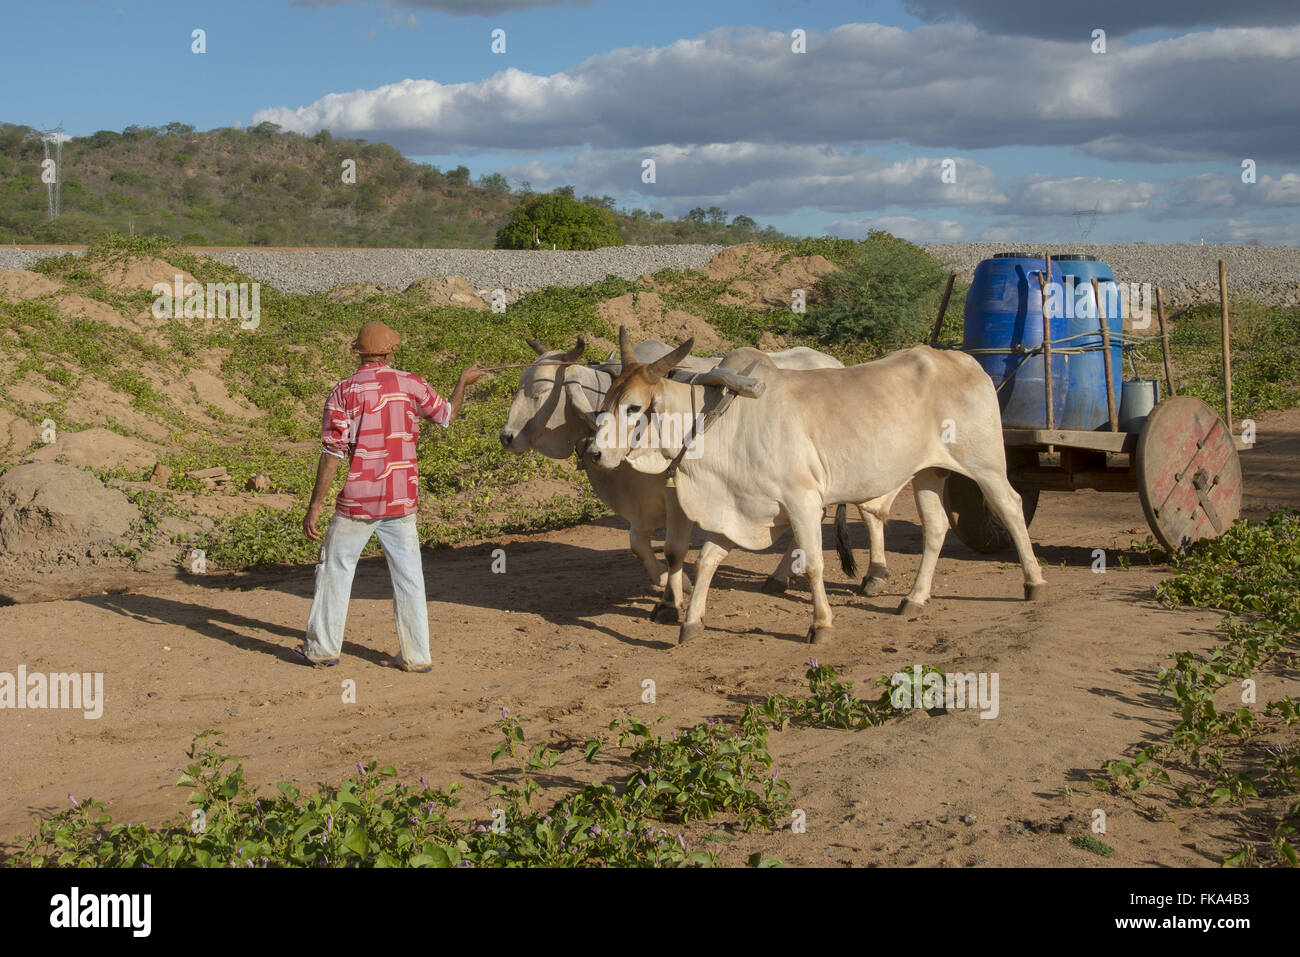 Backcountry with oxcart fetching water to village in the countryside - Stock Image